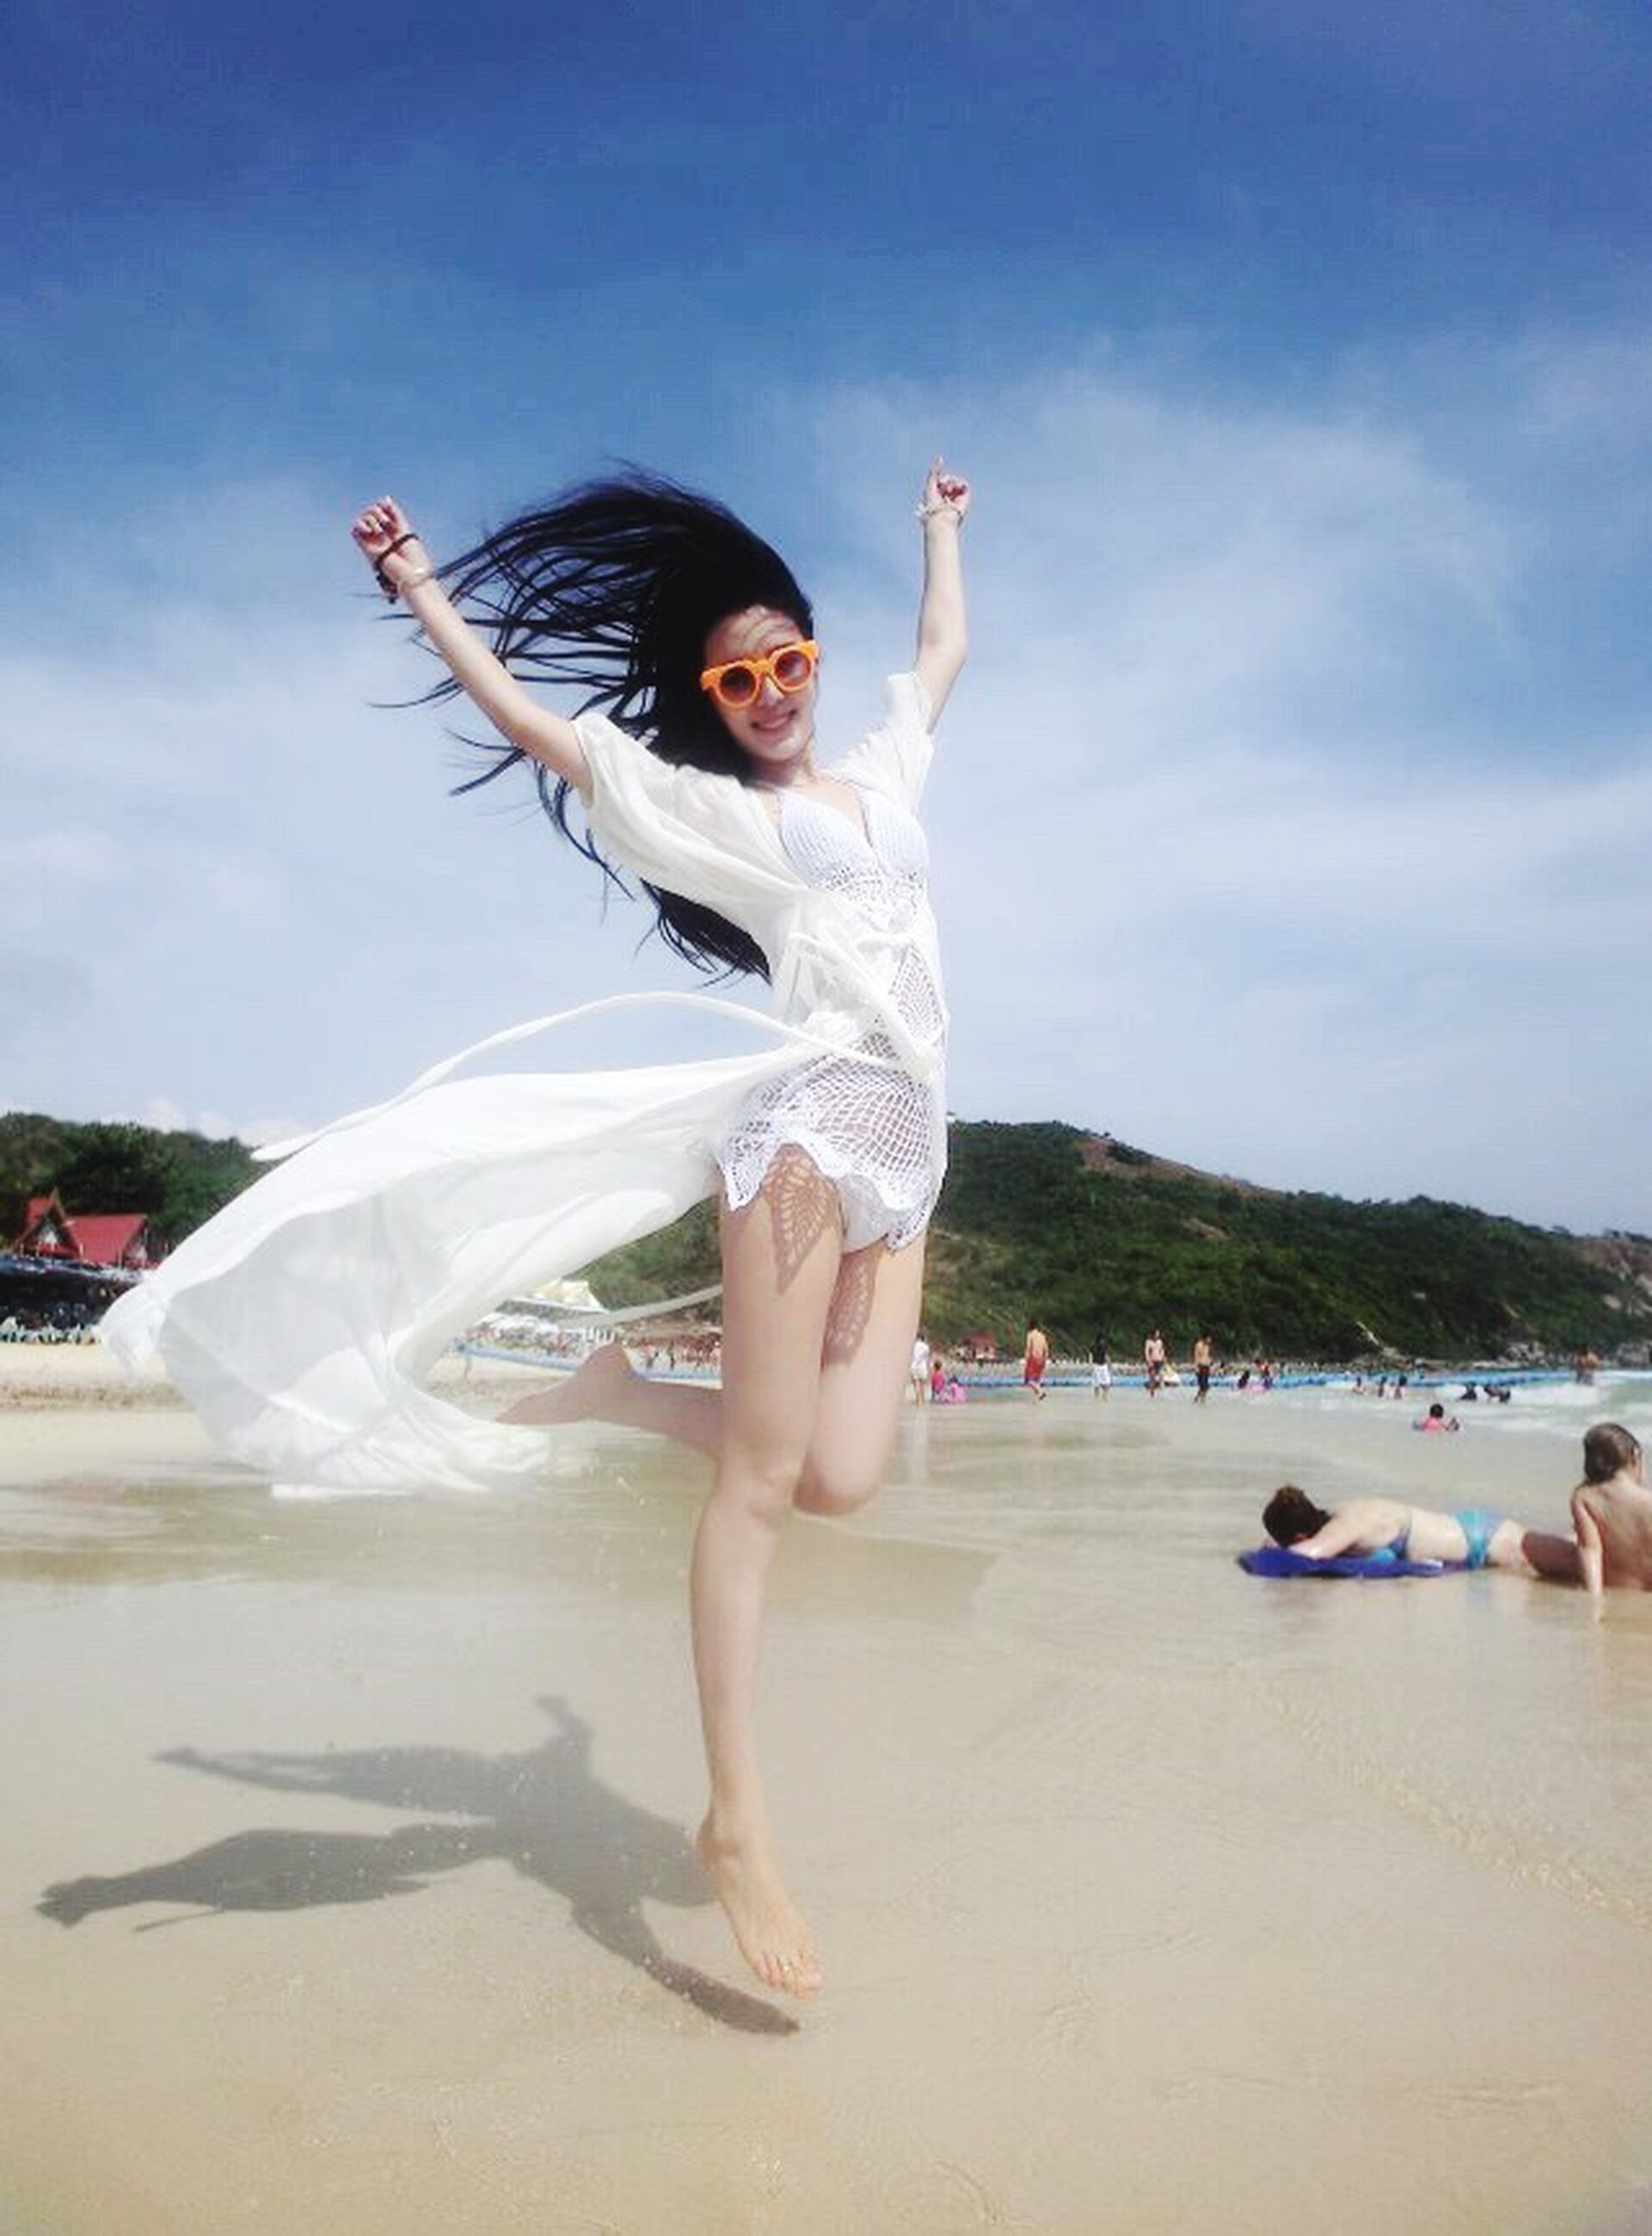 full length, lifestyles, person, leisure activity, young adult, enjoyment, happiness, fun, casual clothing, arms outstretched, mid-air, young women, arms raised, front view, sky, jumping, childhood, carefree